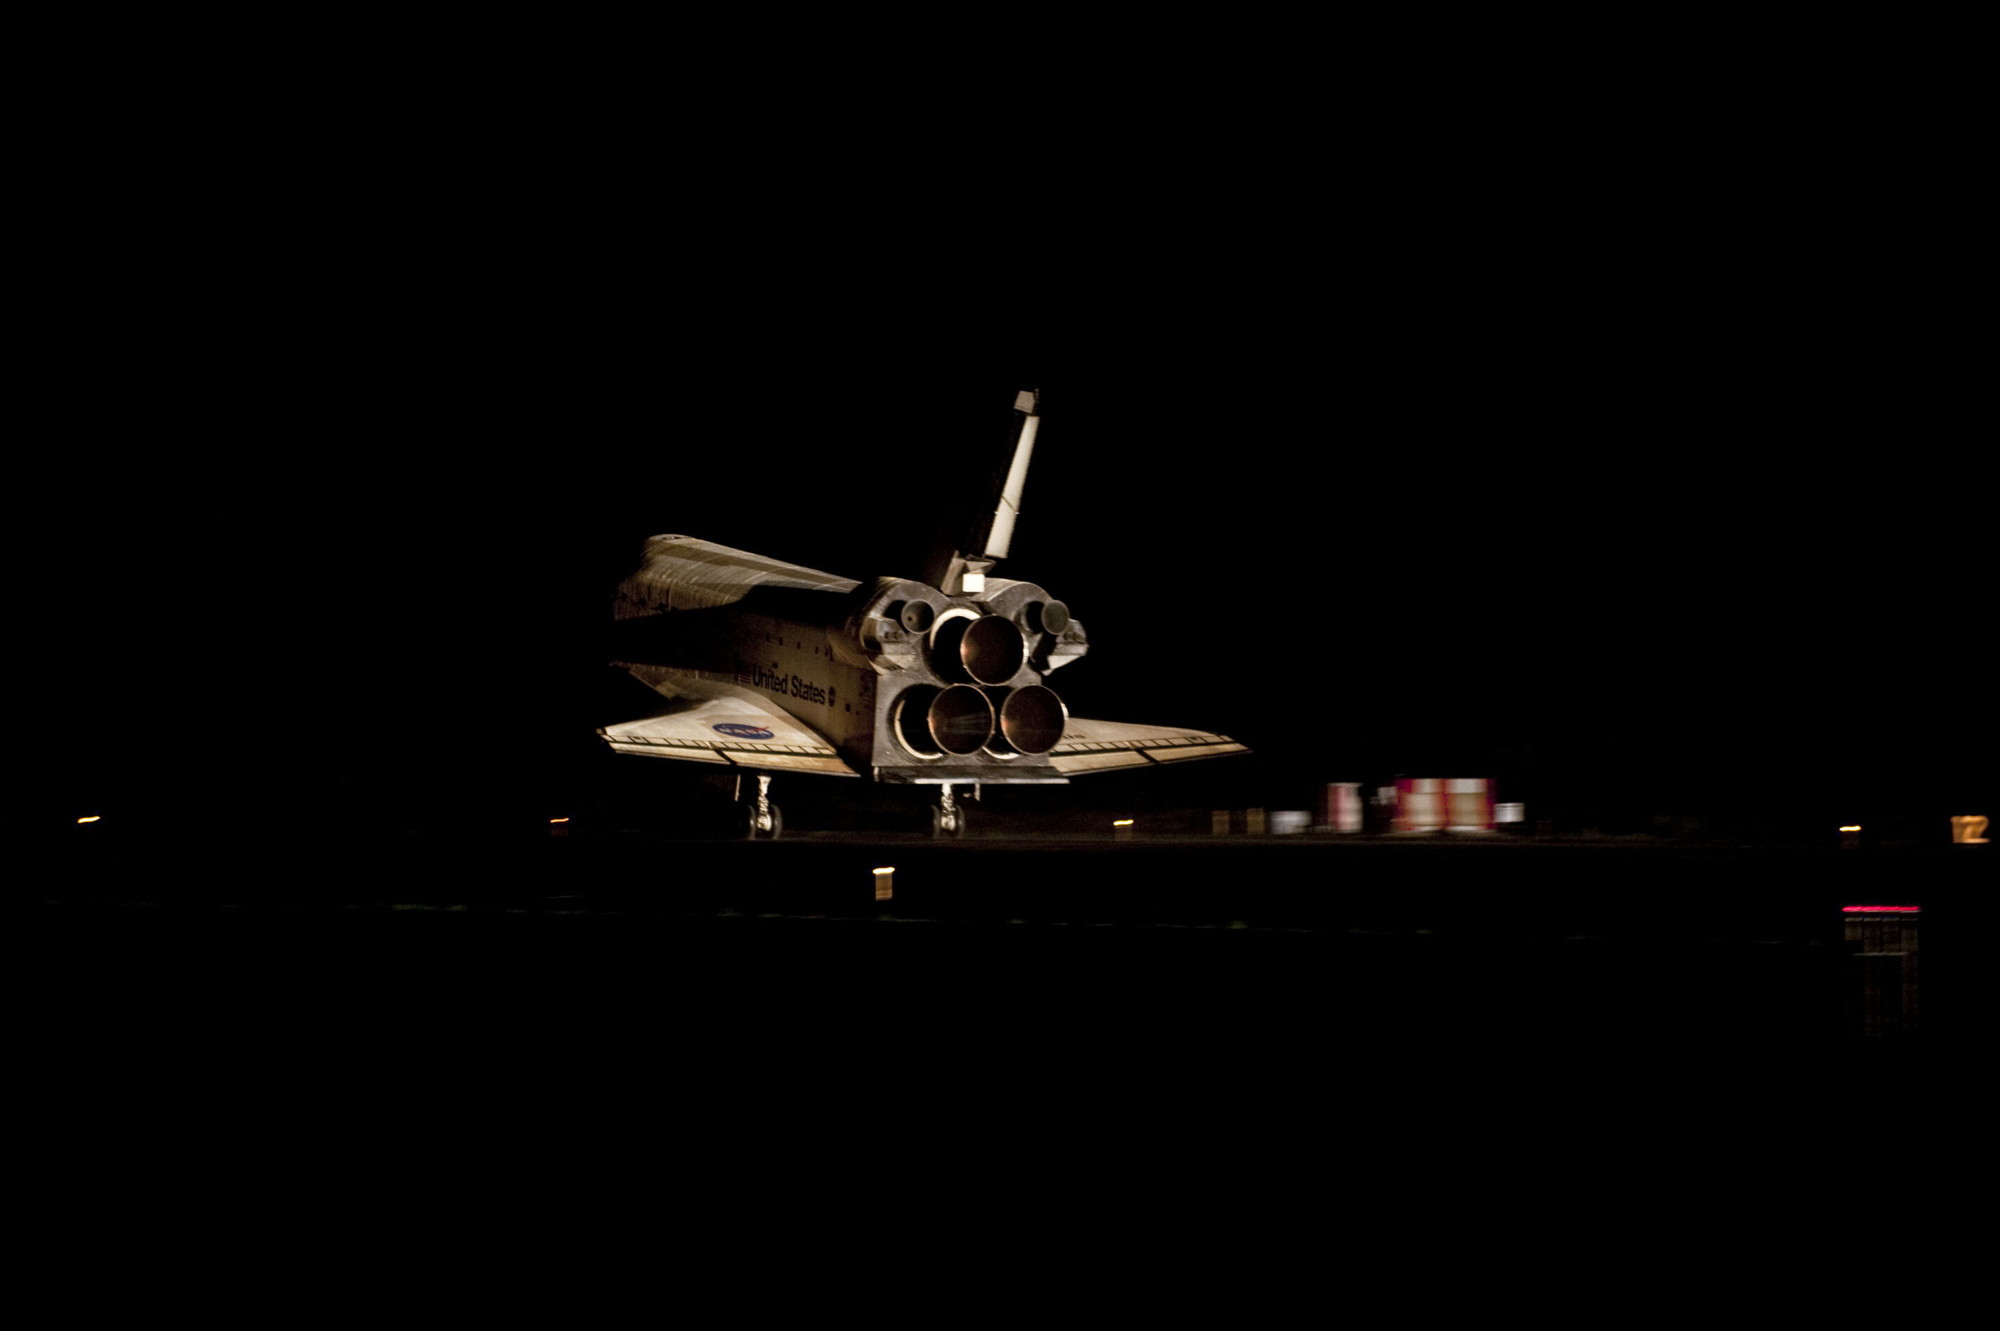 Good Night, Space Shuttle